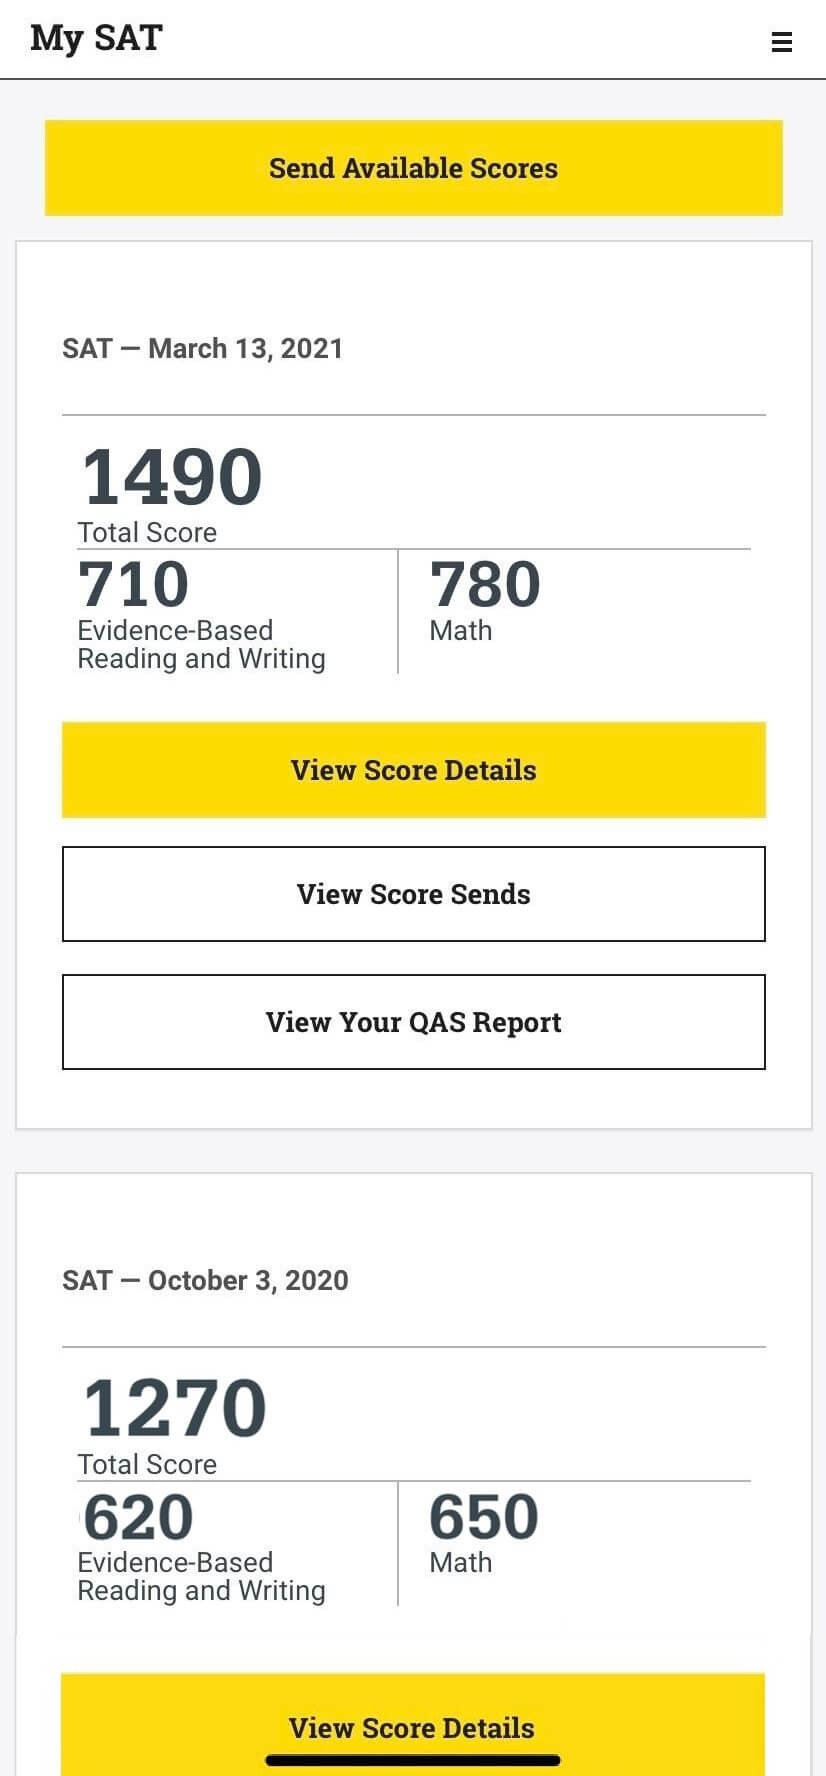 Screenshot of SAT Scores - from 1270 to 1490! COLLEGE ADMISSIONS course, best COLLEGE ADMISSIONS, Common Application, Login To Common App, Common Application Login, Common Application Essay, Common Application Best Essays, Common Application Recommendation Letters, Common Application Letter Of Recommendation, Common Application Questions, Common Application Fee Waiver, What Is Common App Essay, When Does Common App, How Long Common App Essay, Common Application Vs Coalition Application, Admissions Expert UAE, Best SAT classes Dubai, Best SAT classes Abu Dhabi, Best SAT classes UAE, Best SAT training in Dubai, Best SAT training in Abu Dhabi, Best SAT course in Dubai, Best SAT course in Abu Dhabi, SAT Courses in Dubai, SAT Preparation Dubai, Best SAT Coaching in Dubai, Best SAT Coaching in Abu Dhabi, SAT UAE, SAT Coaching Dubai, MBA ADMISSIONS Dubai, MBA ADMISSIONS training, best MBA ADMISSIONS, SAT classes in Dubai, SAT prep Dubai, SAT Dubai, SAT training, SAT prep course UAE, SAT Abu Dhabi, Best SAT institute in Dubai, Best SAT institute in UAE, Best SAT institute in Abu Dhabi, Best SAT online coaching,